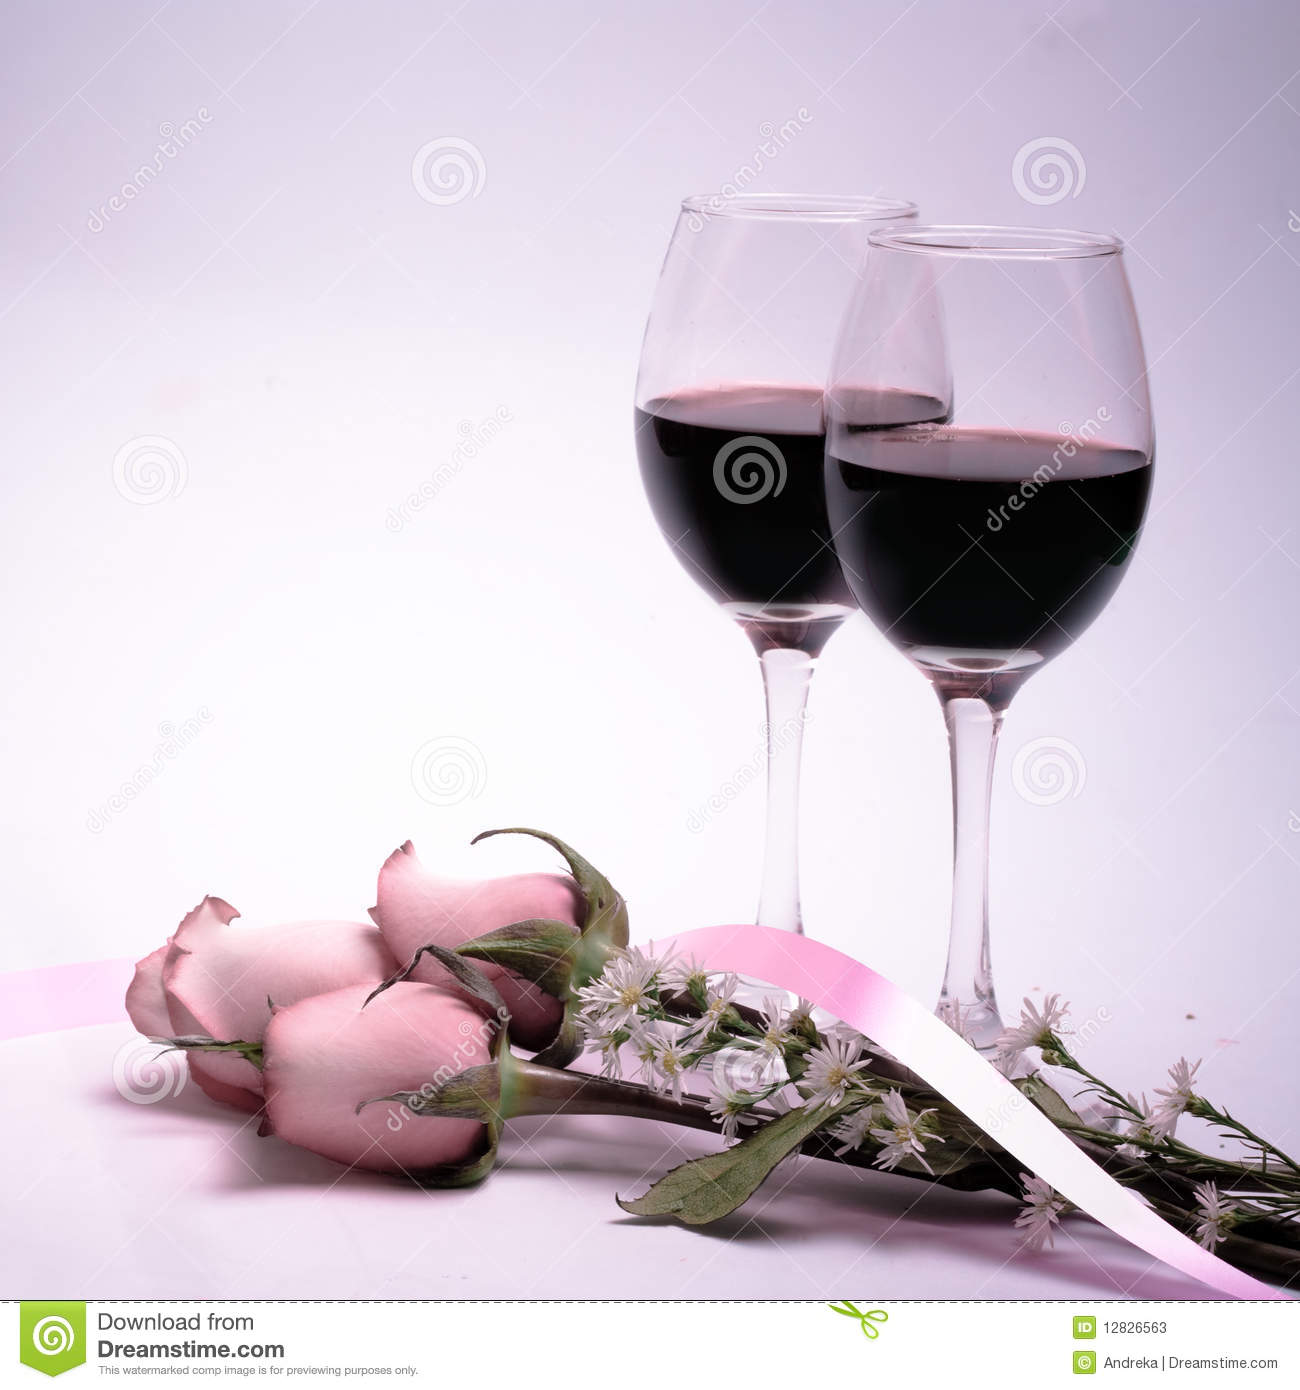 wine and roses stock photos image 12826563